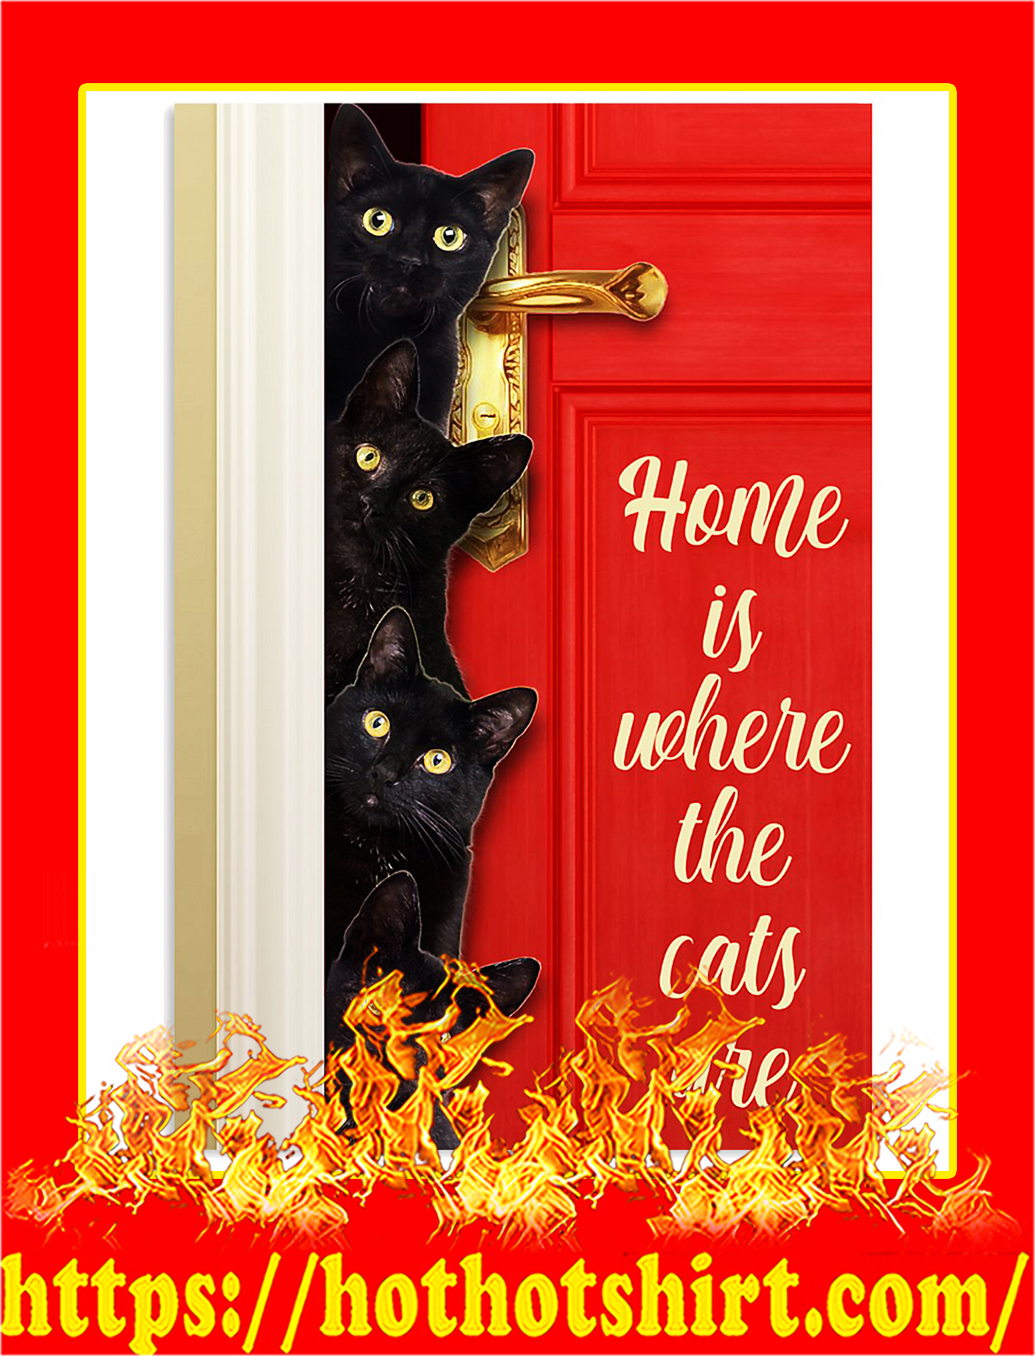 Home is where the cats are poster - A2